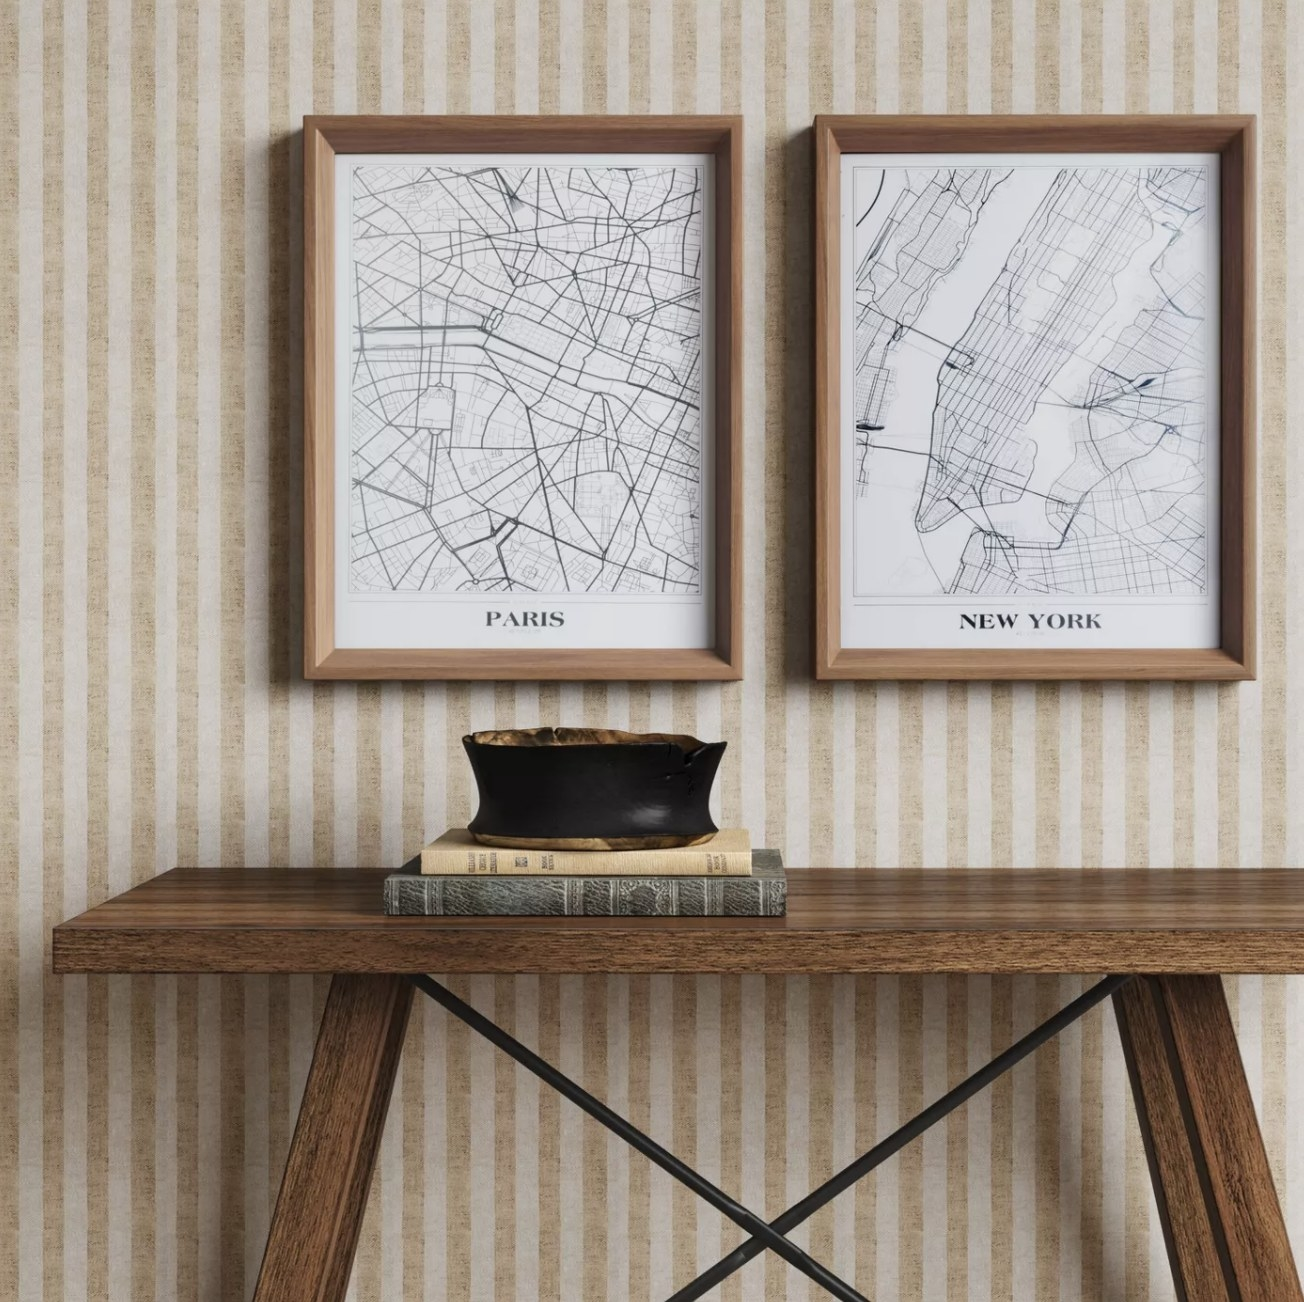 Two framed maps of Paris and New York